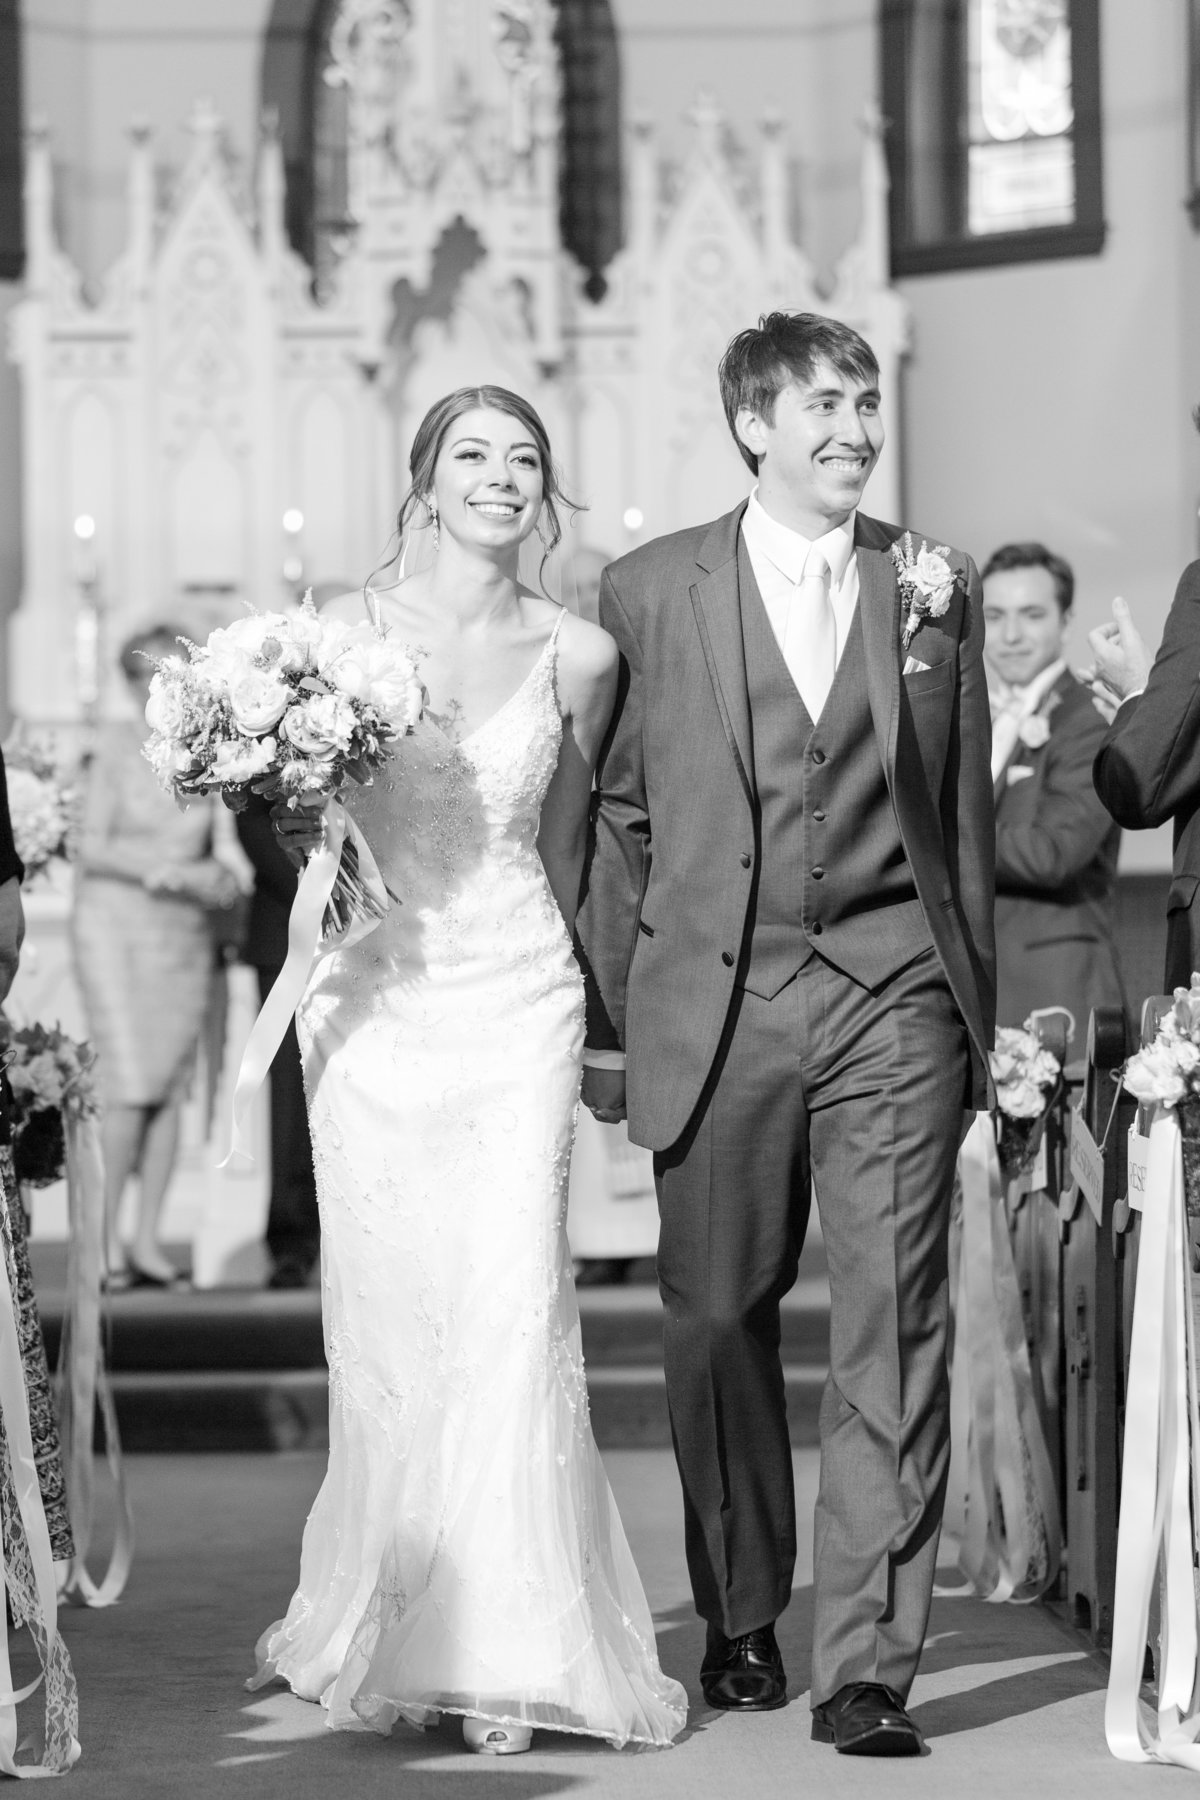 Bride and groom walking back down aisle after wedding ceremony